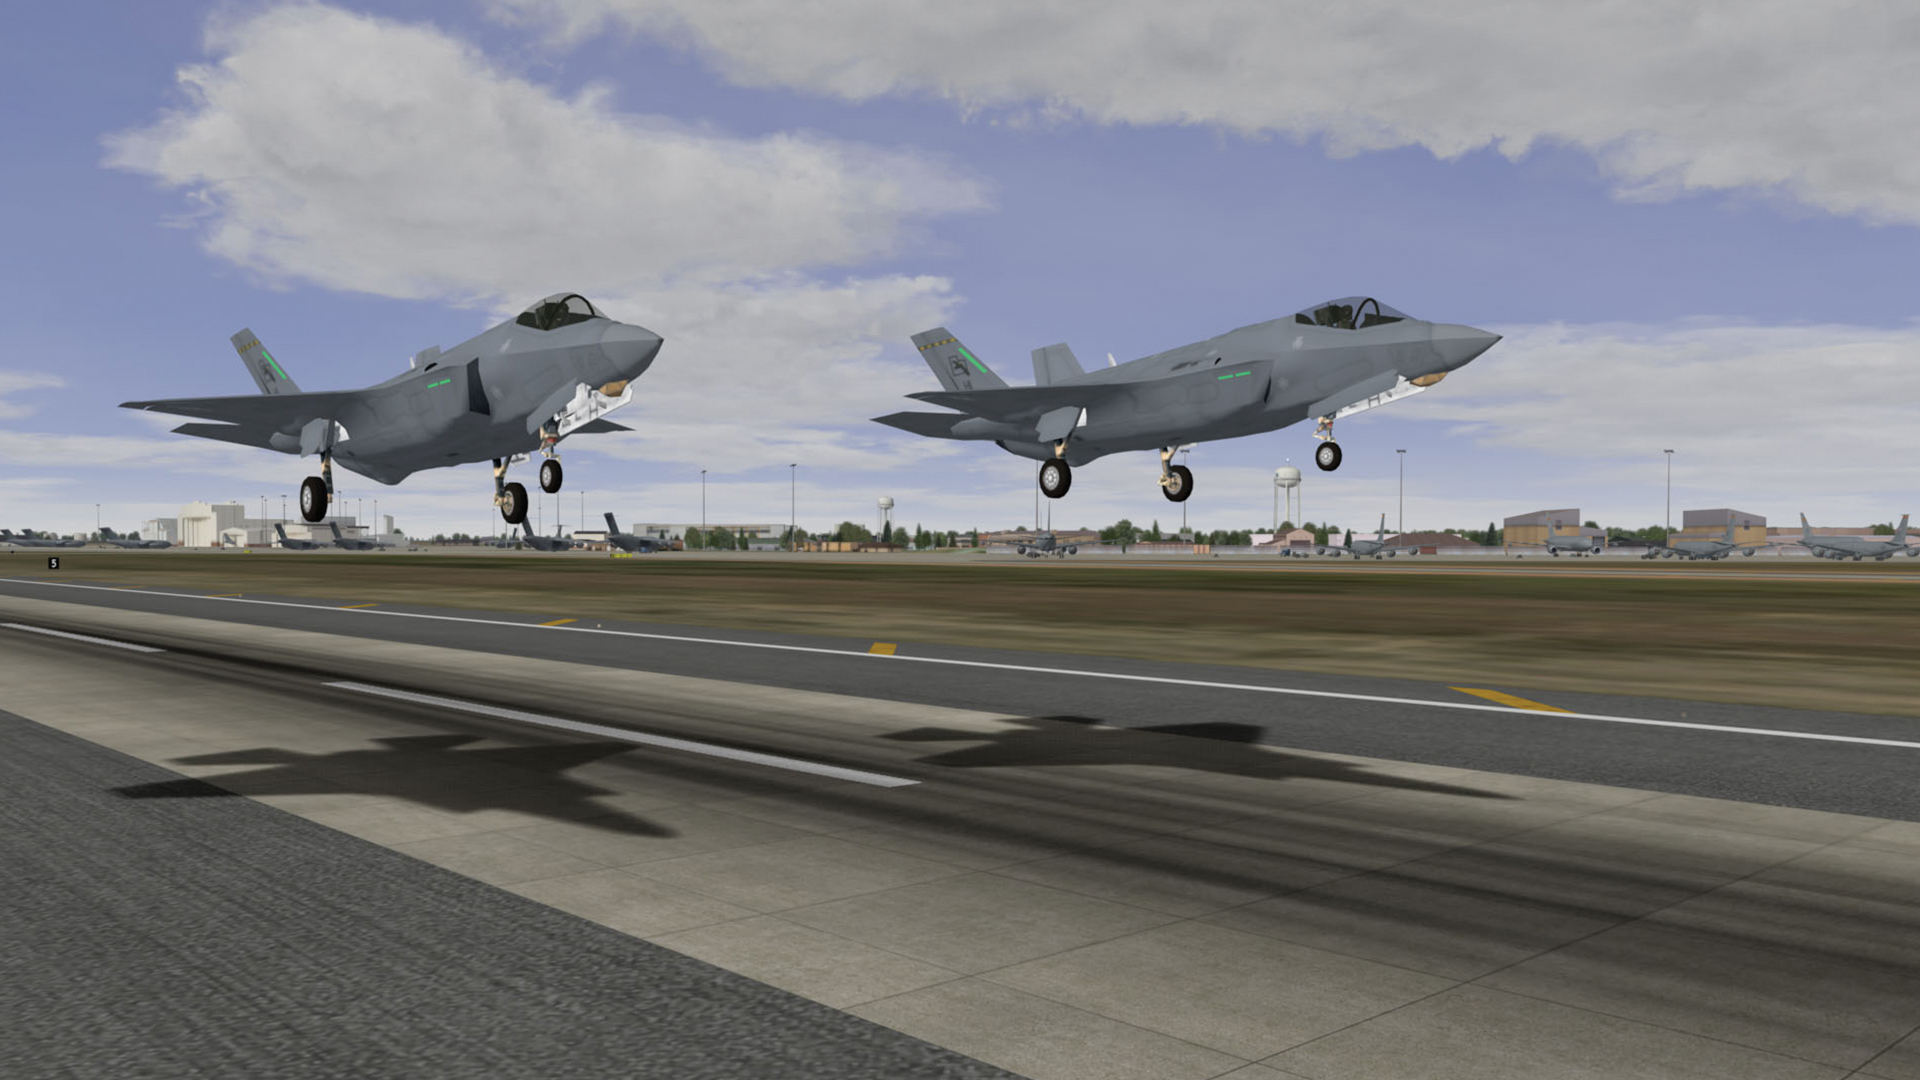 Two jets taking off